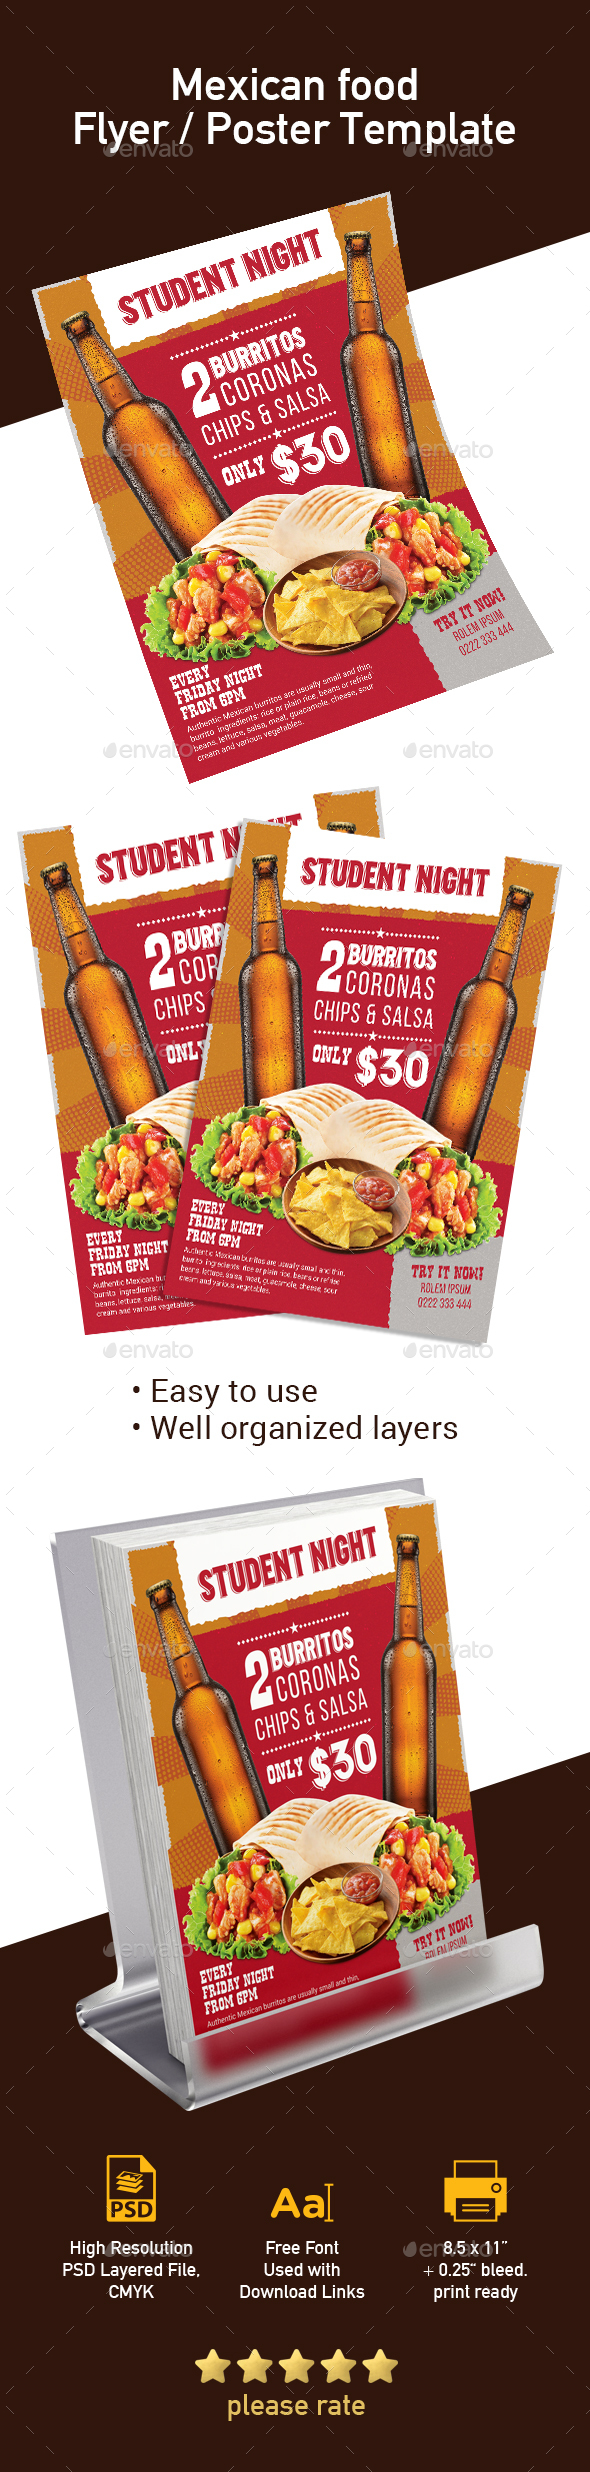 Mexican Food Club Flyer / Poster Template